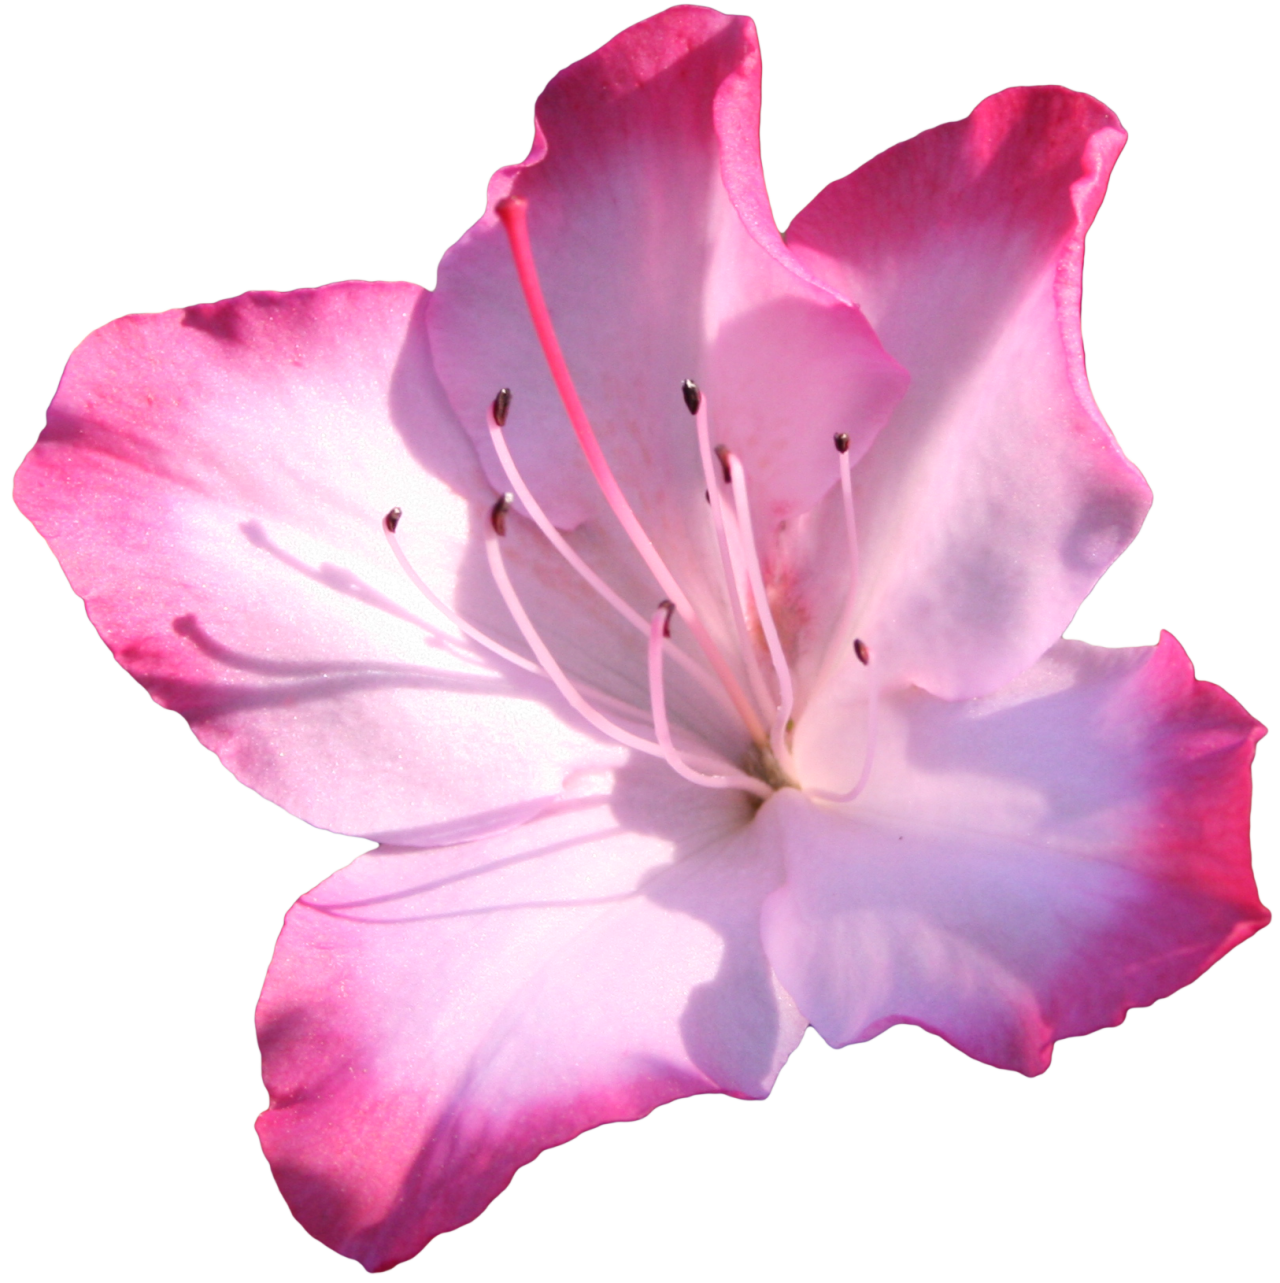 Azalea flower clipart graphic library library Azalea Pink flowers Clip art - pink flower 1280*1283 transprent Png ... graphic library library